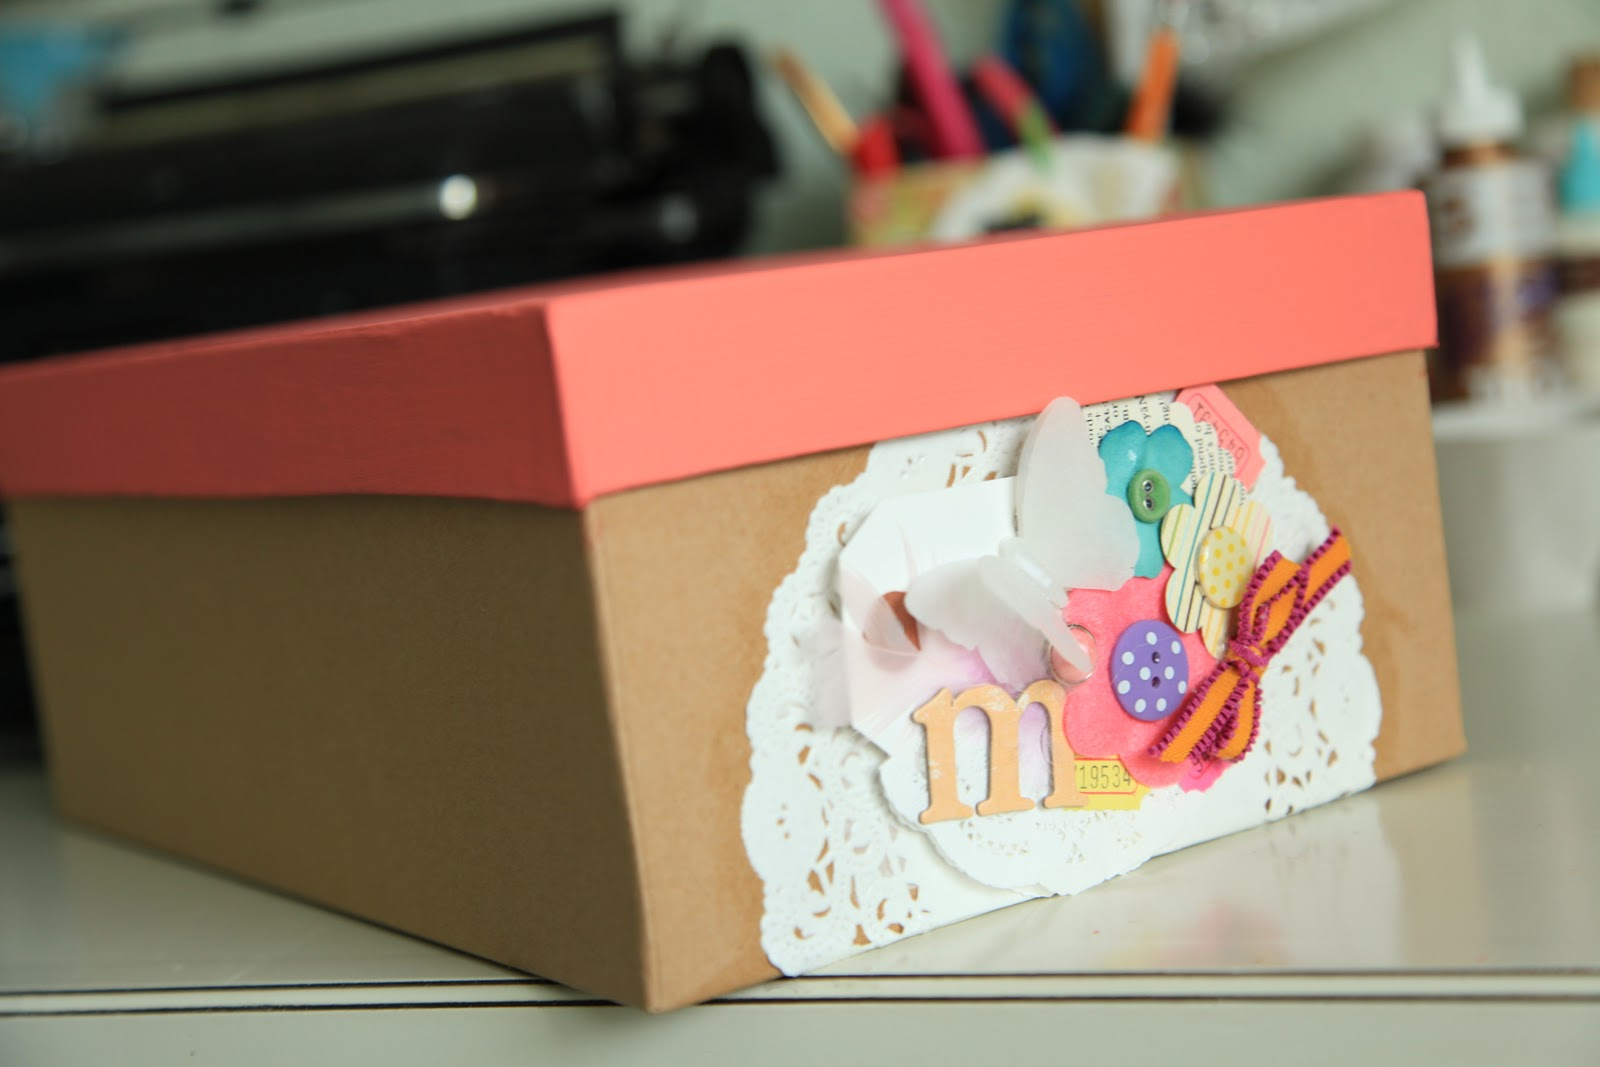 vintage pretty: {DIY} Turn a Shoe box into a Gift Box